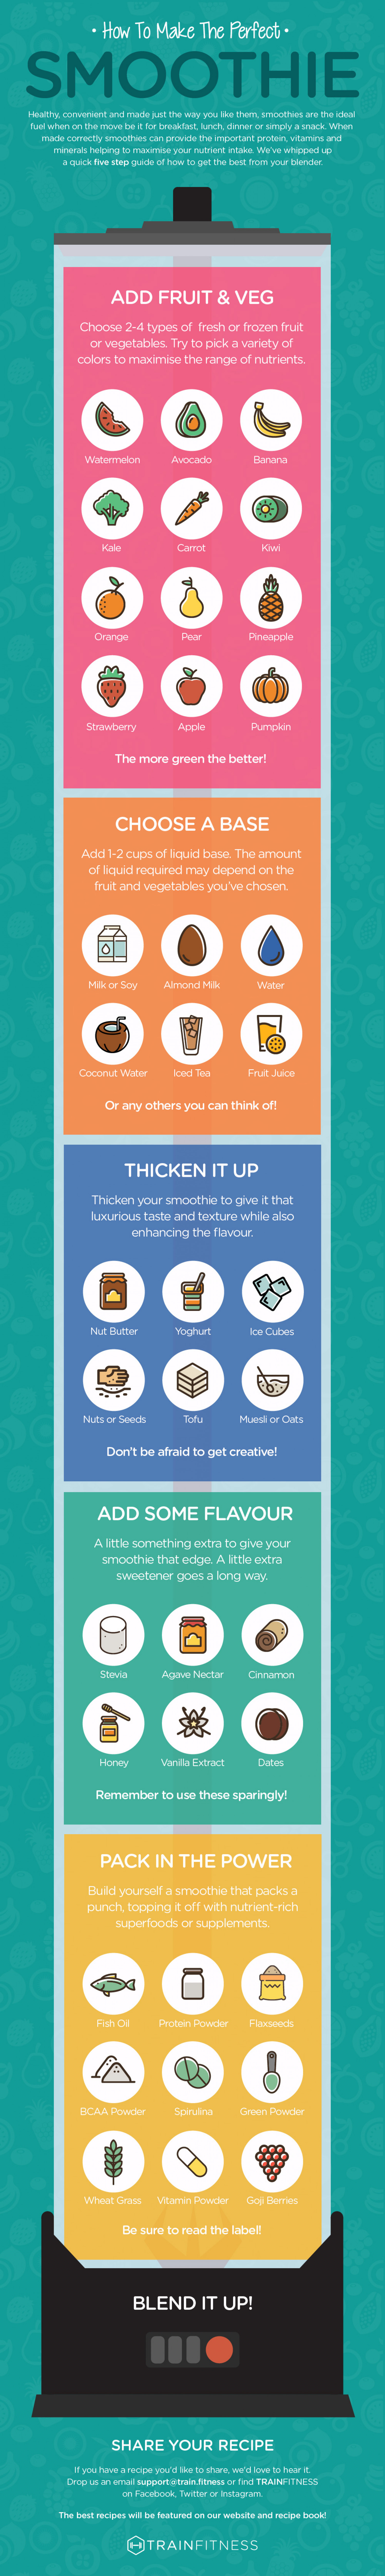 How to make the Perfect Smoothie Infographic